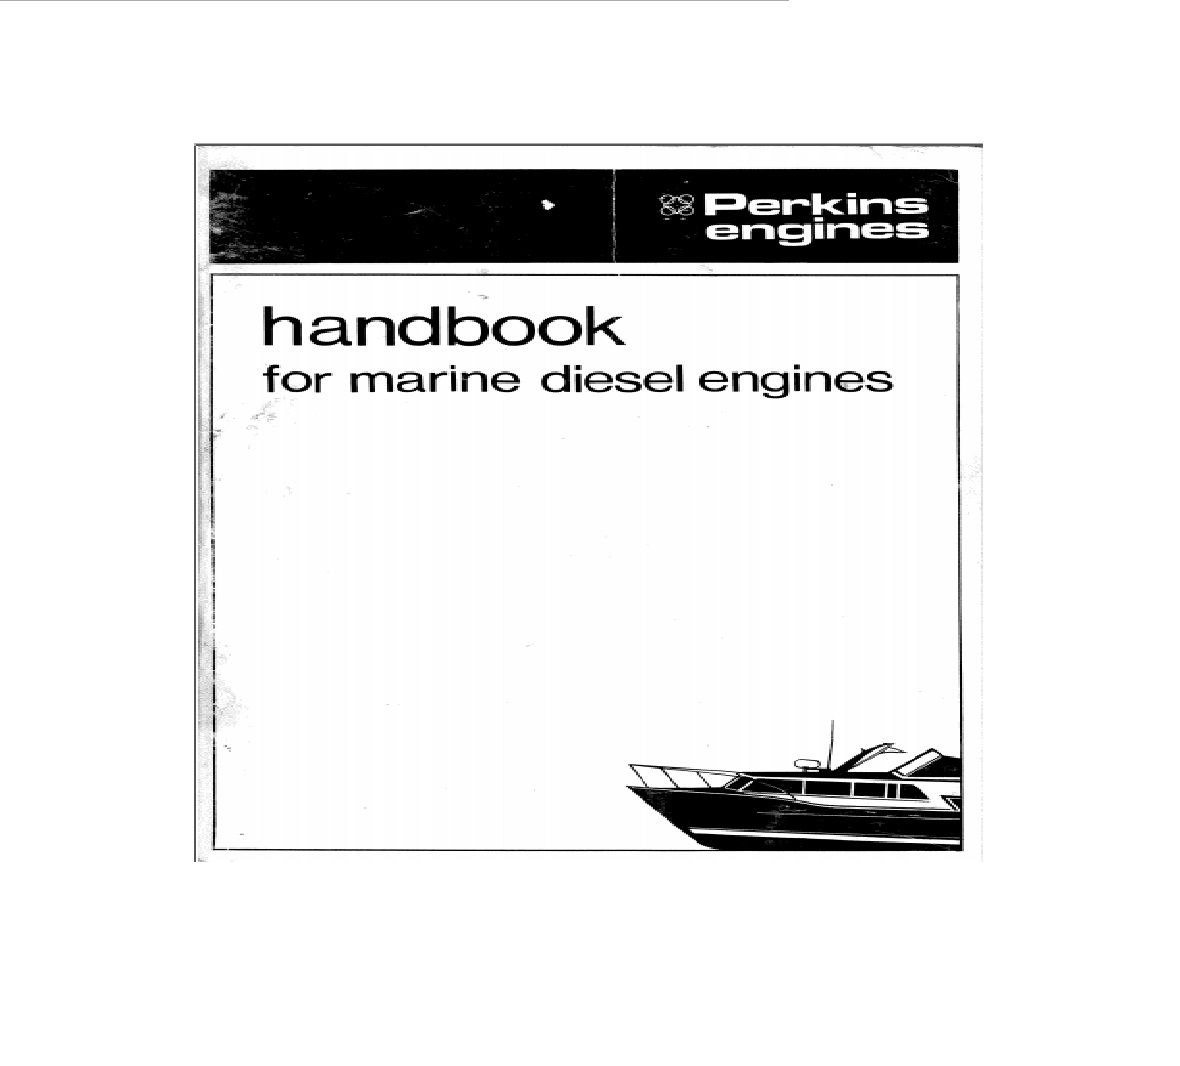 Perkins 18 Outboard Manual